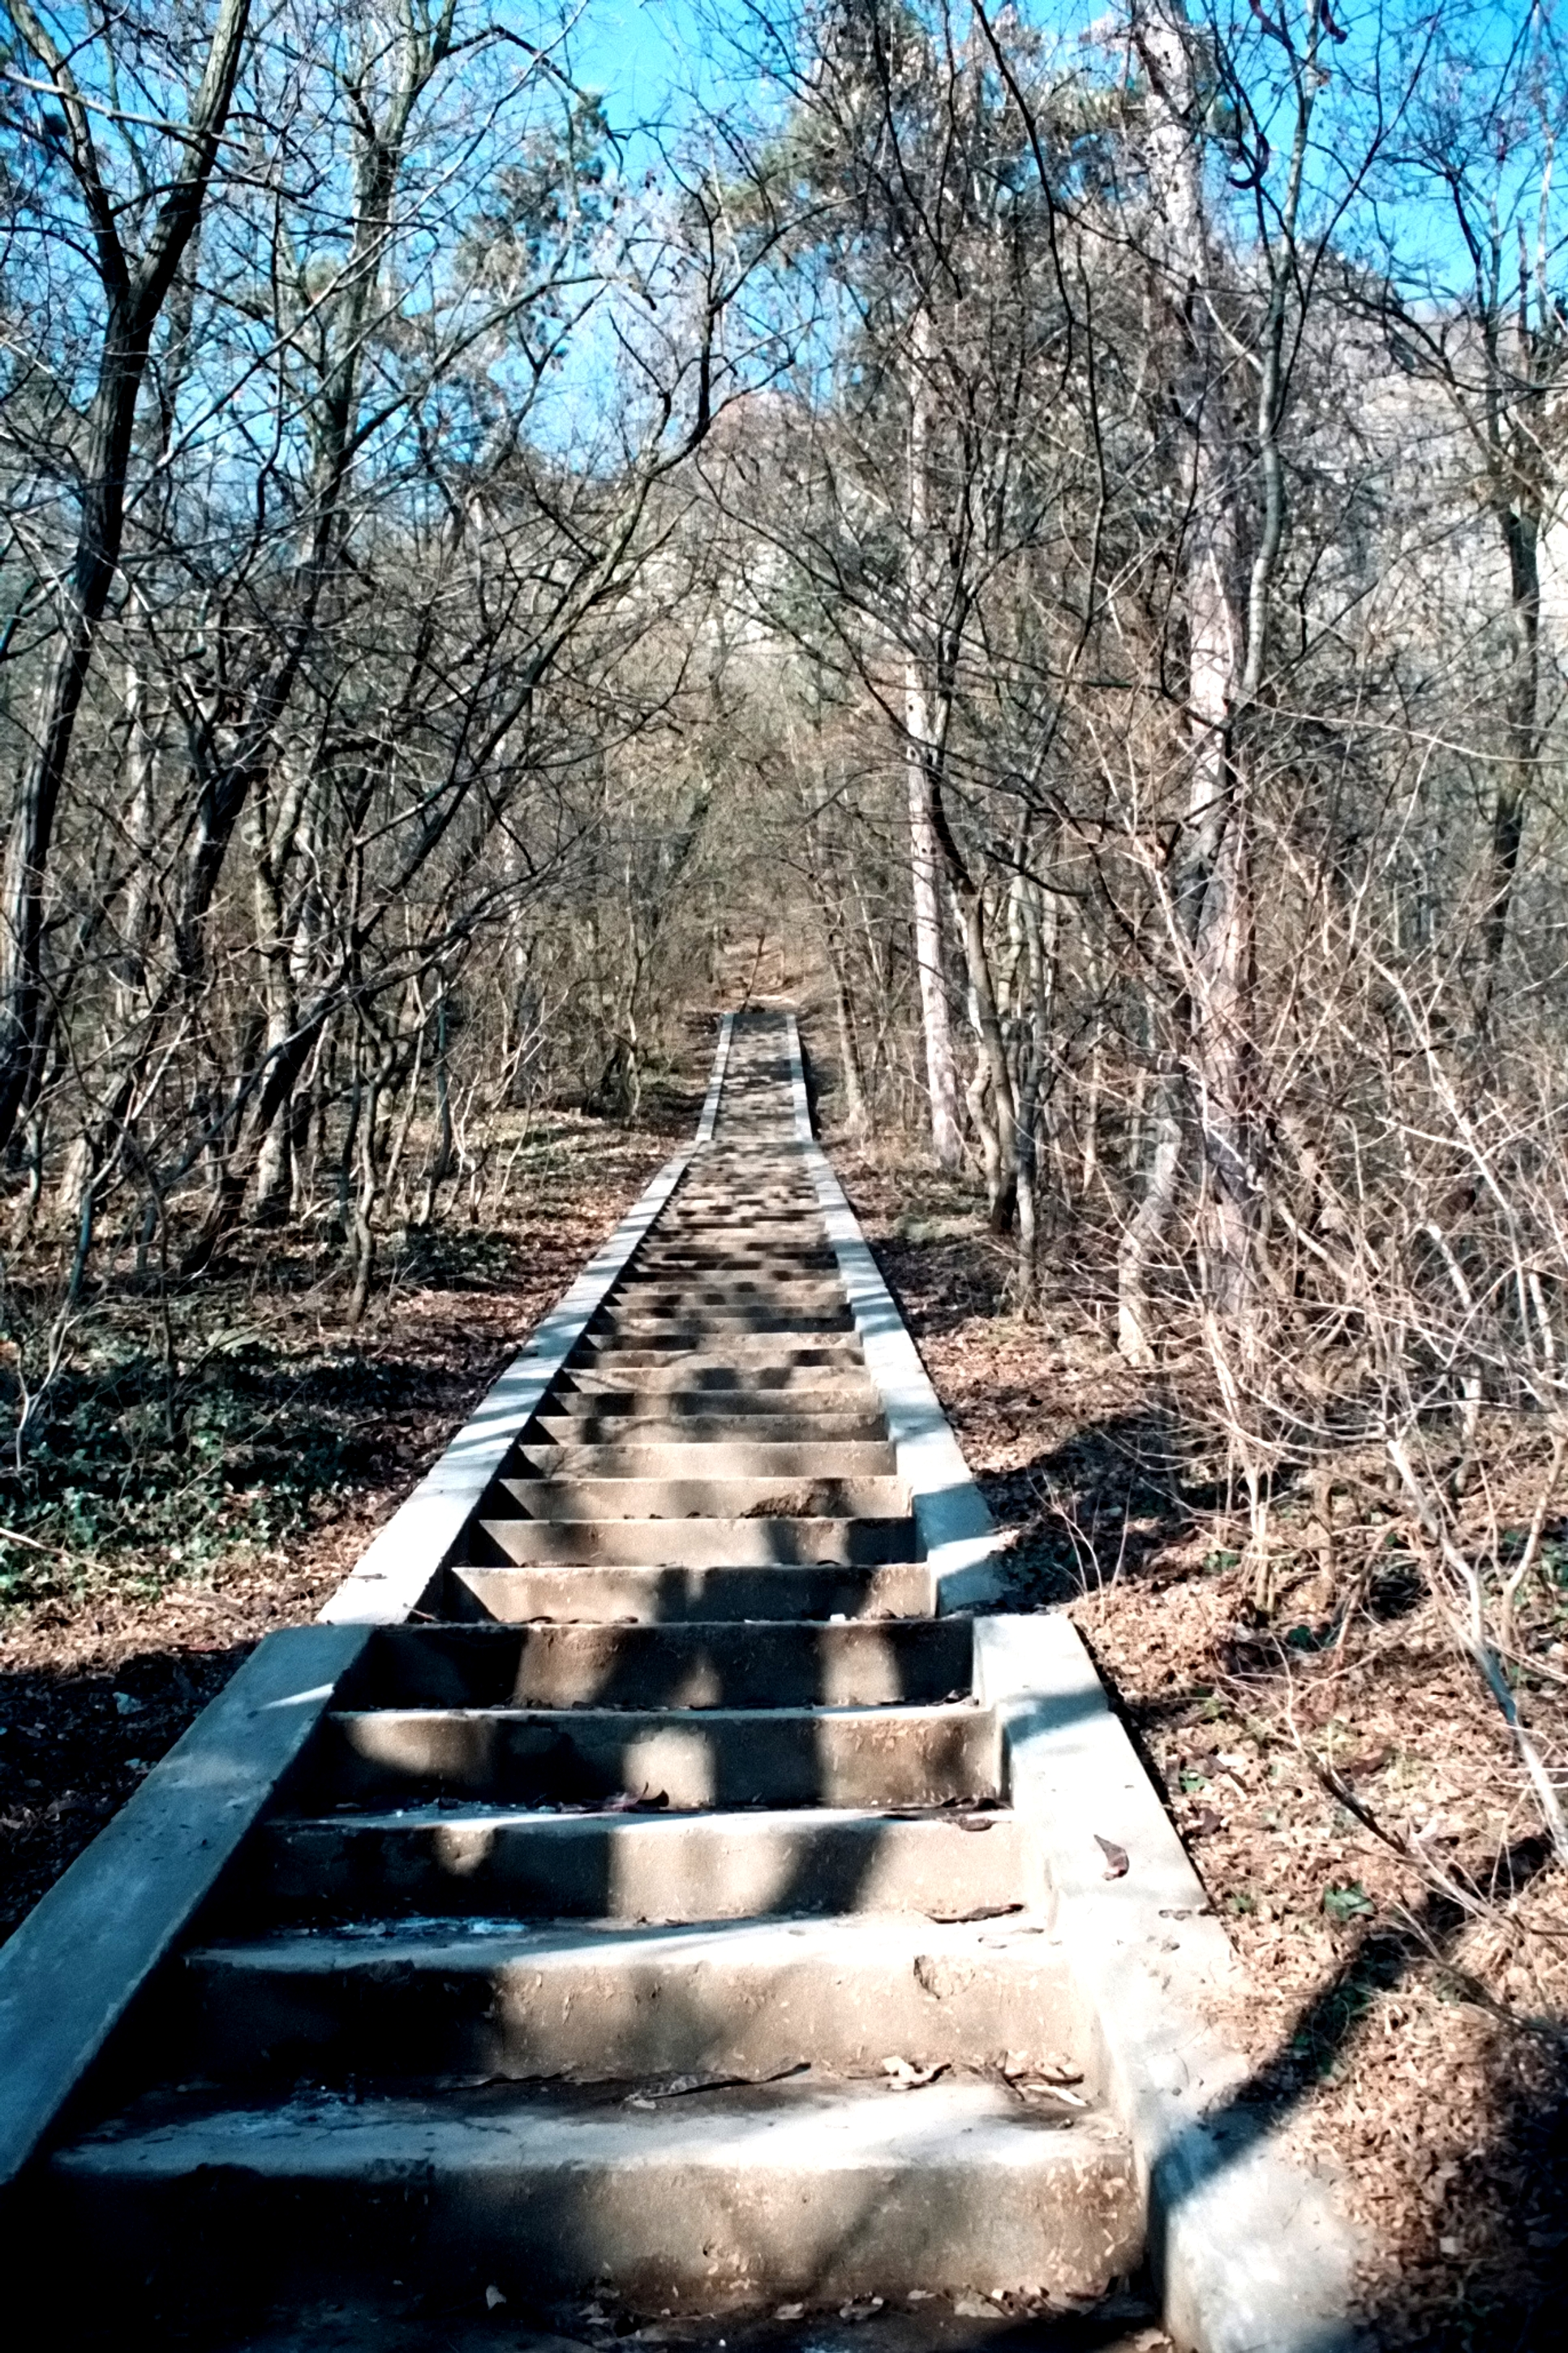 Stairs to nowhere, Barren, Forest, Garden, Path, HQ Photo